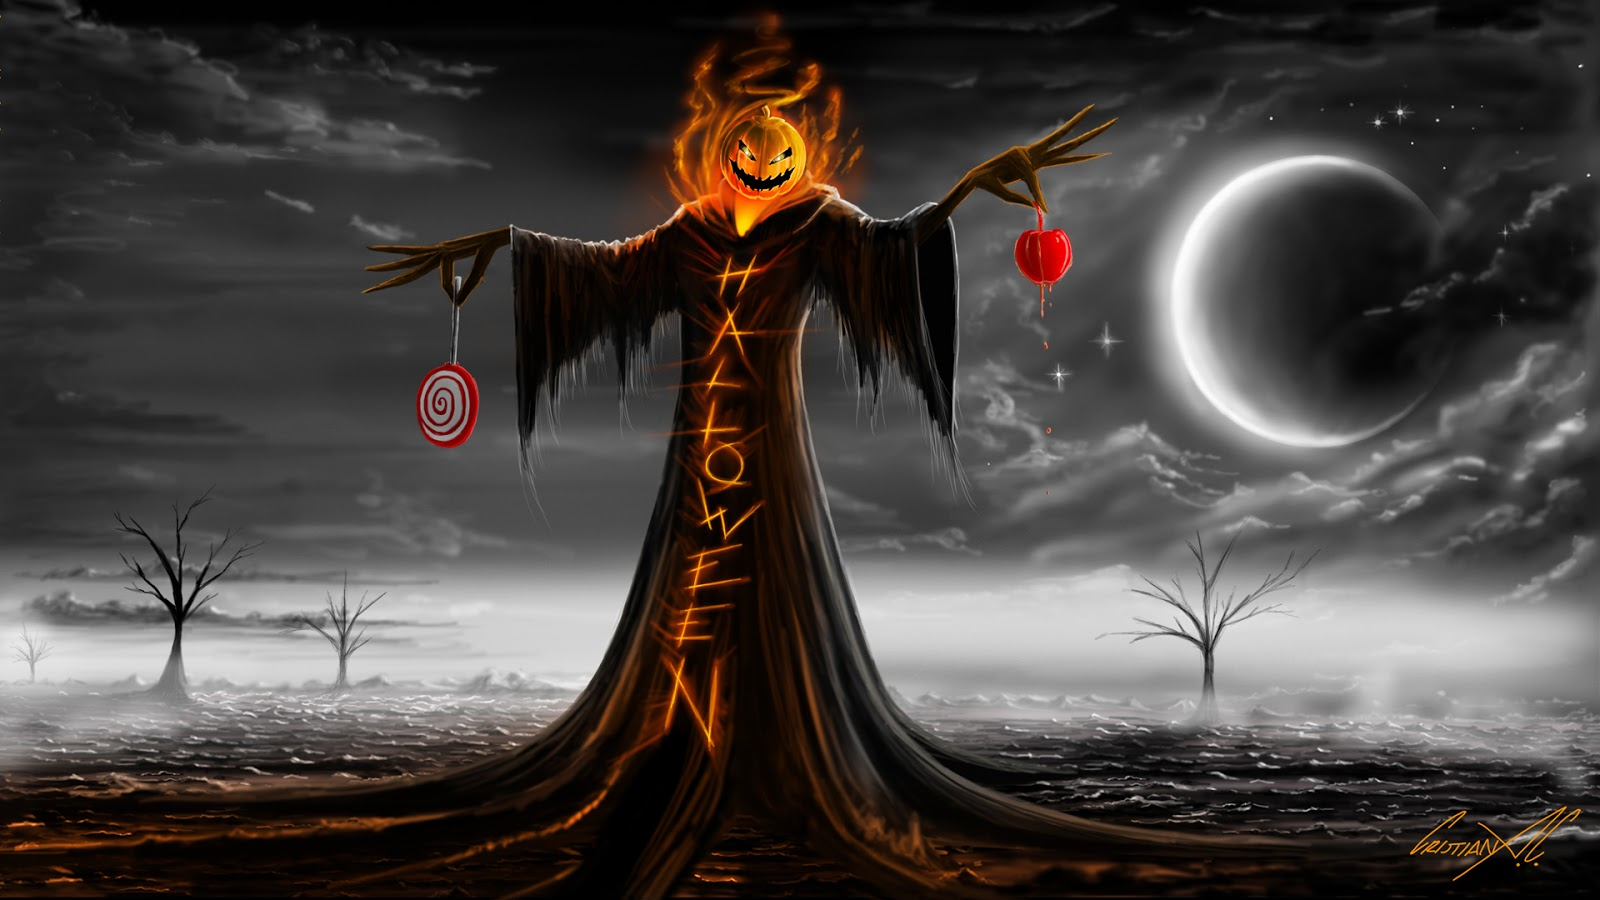 All Wallpapers Happy Halloween hd Wallpapers 2013 1600x900